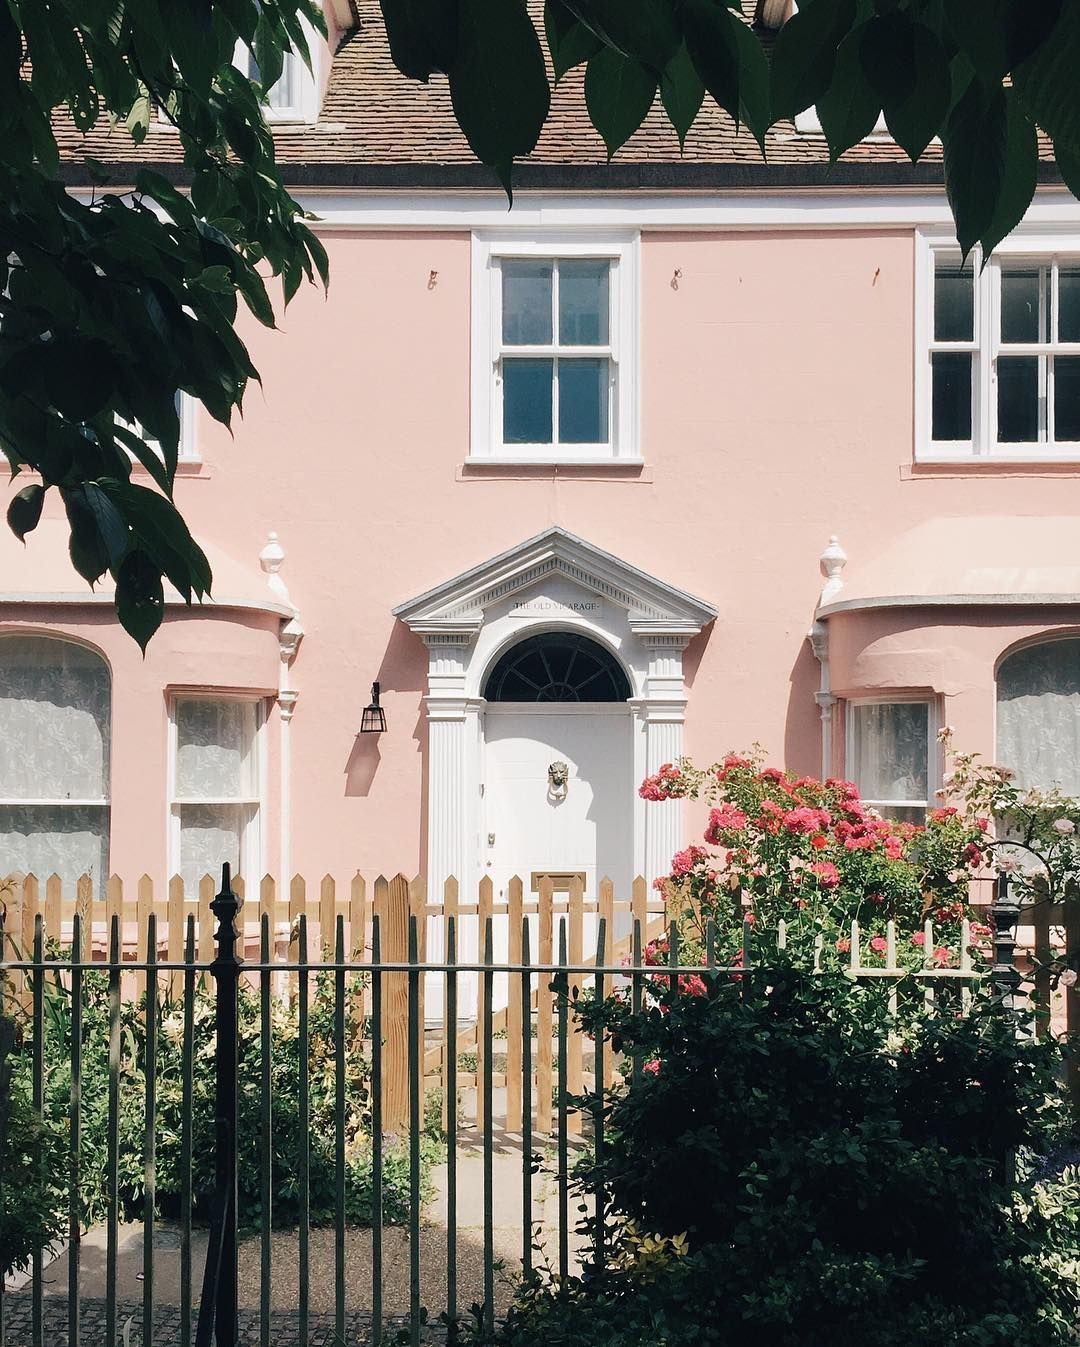 The Next Big Exterior Paint Color Might Just Be Pink In 2020